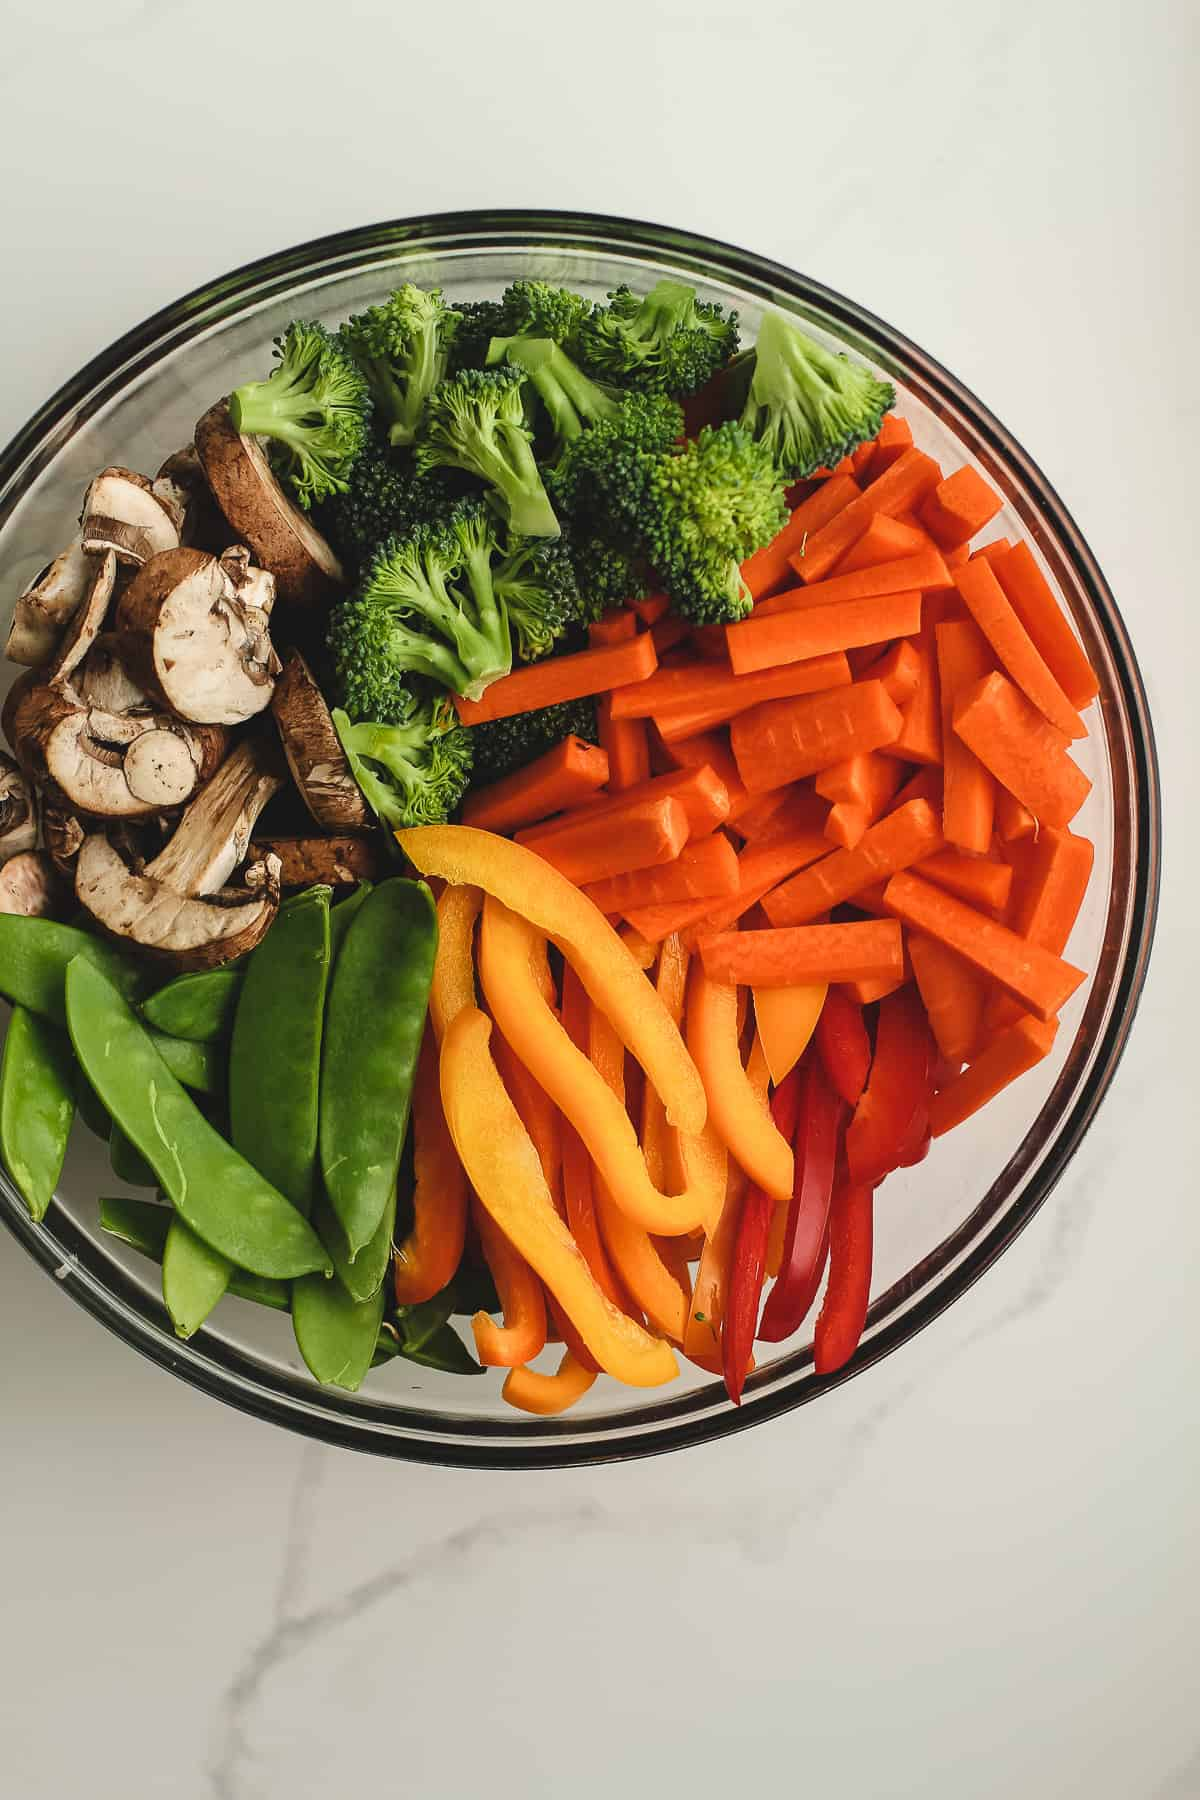 A large bowl of veggies for stir fry.